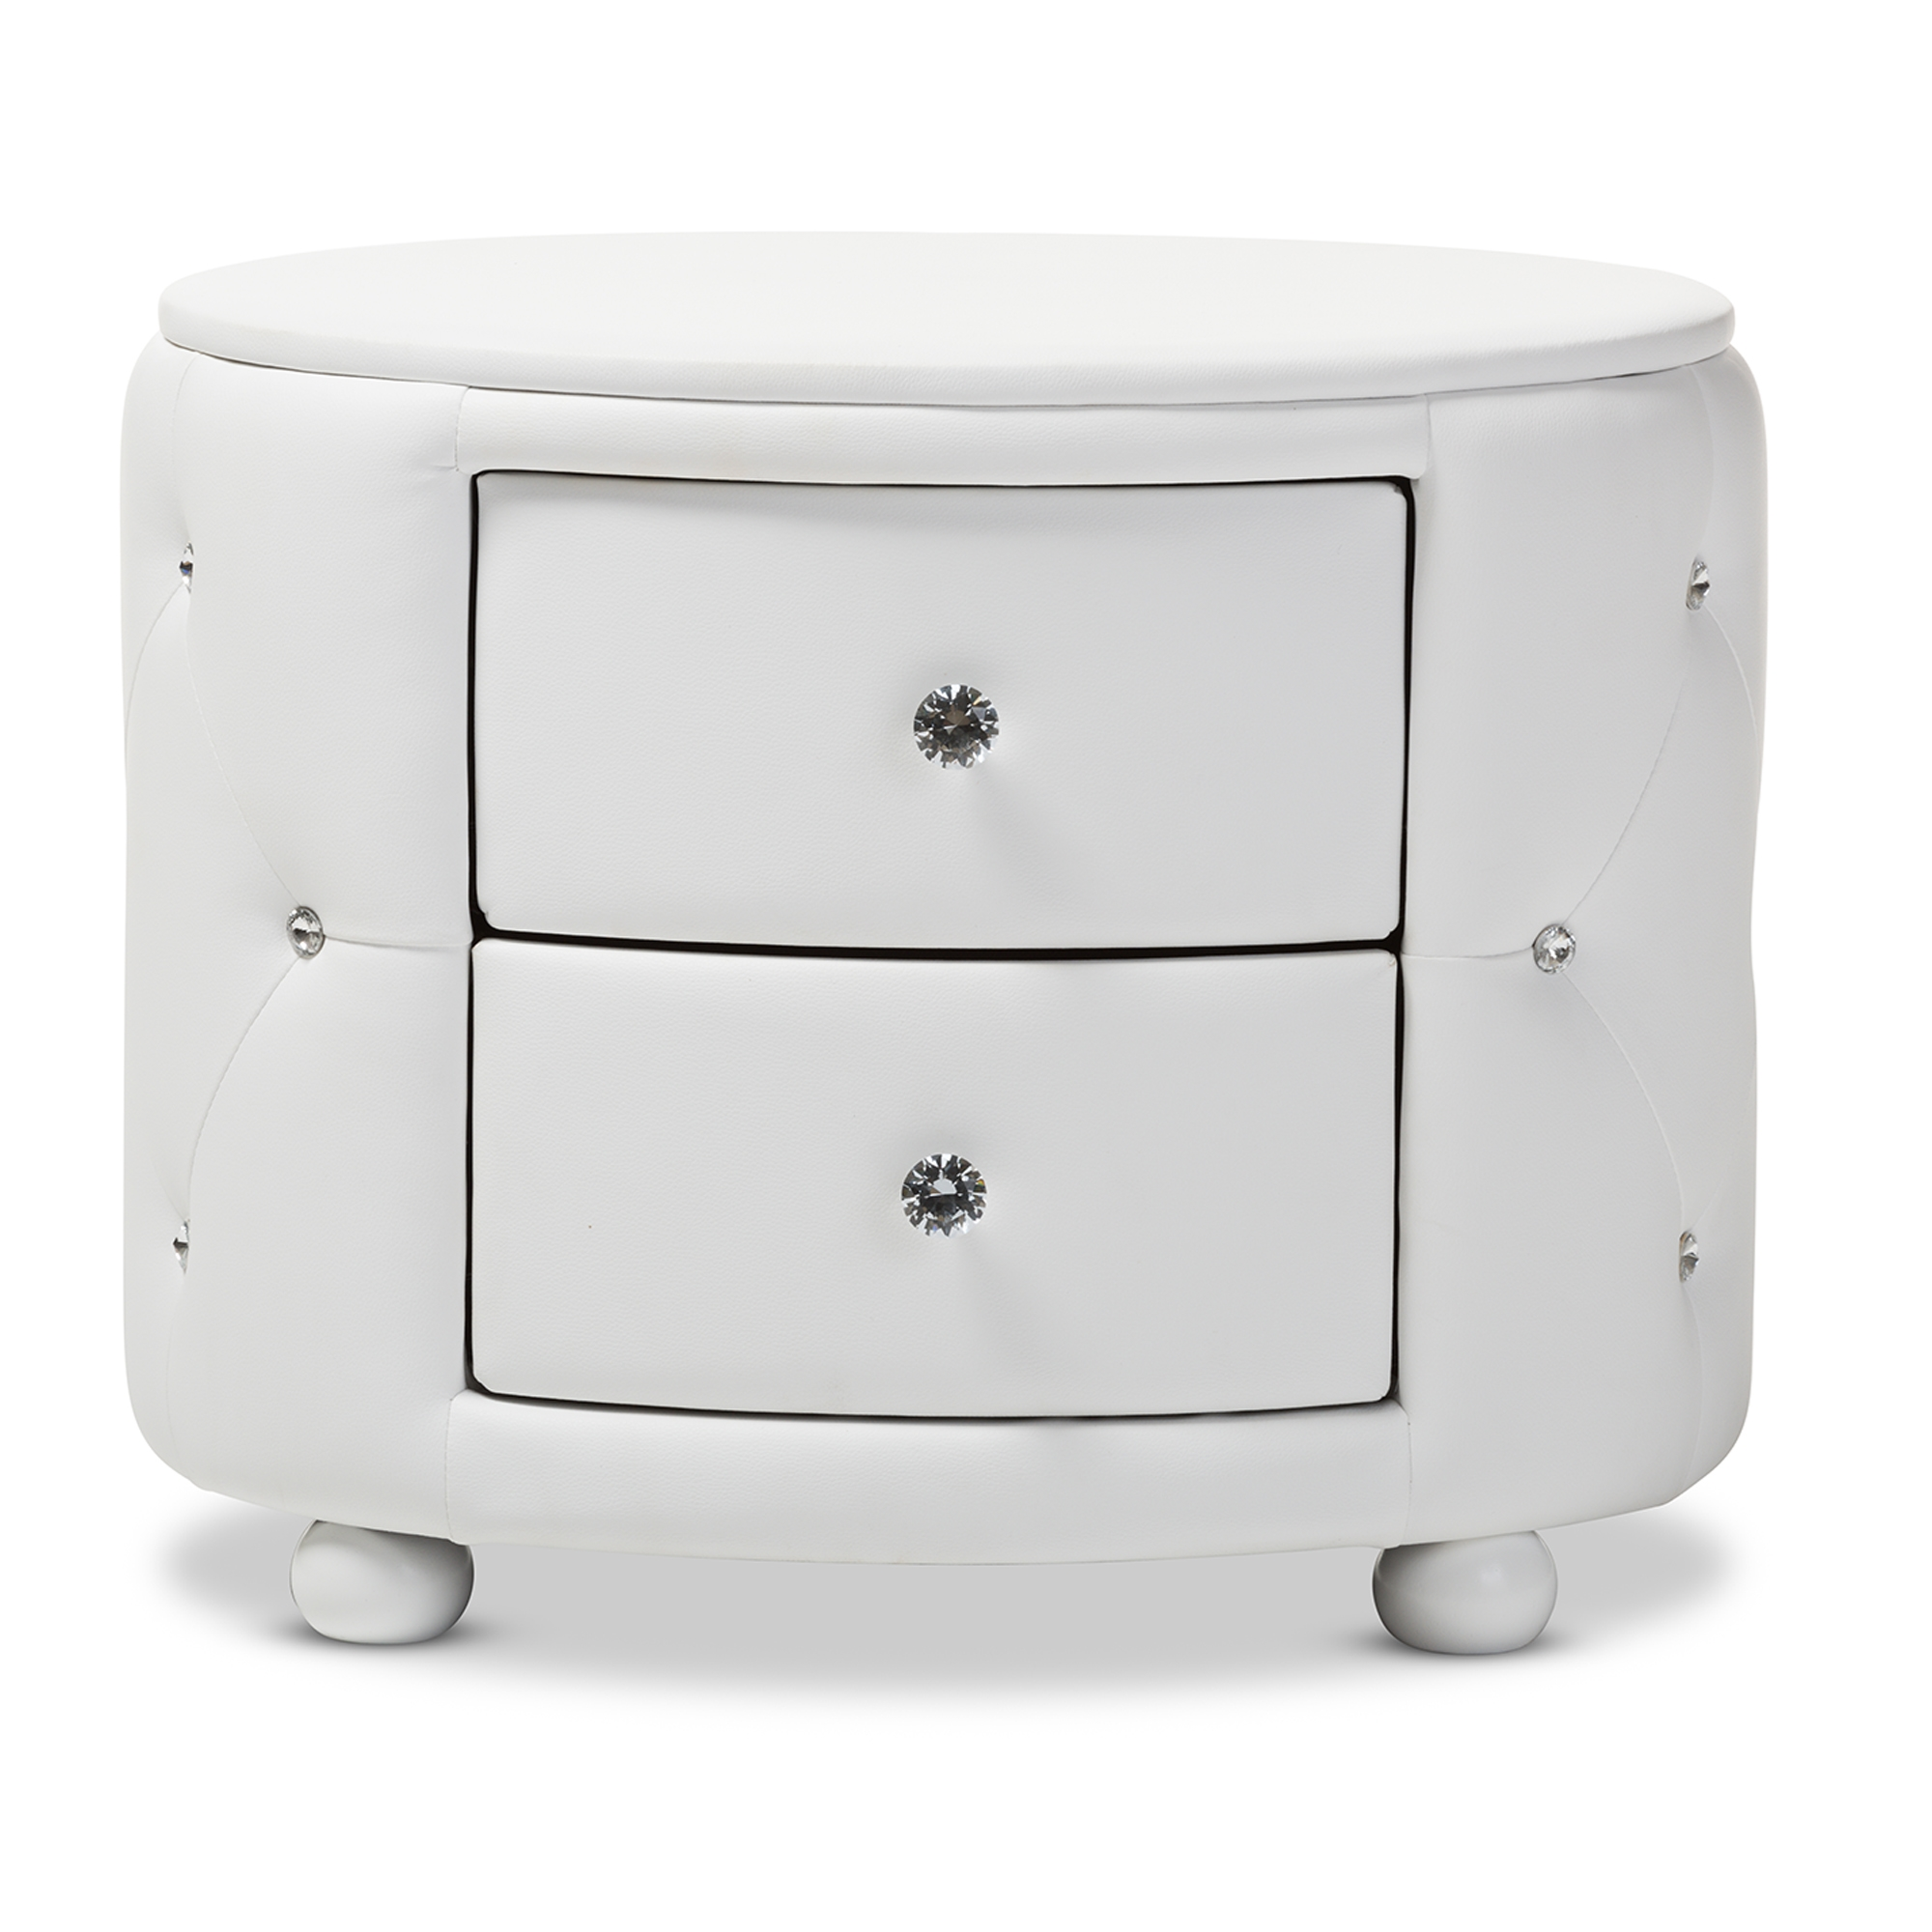 ... Bedroom Furniture U003e Wholesale Night Stands U003e. Baxton Studio Davina  Hollywood Glamour Style Oval 2 Drawer White Faux Leather Upholstered  Nightstand ...